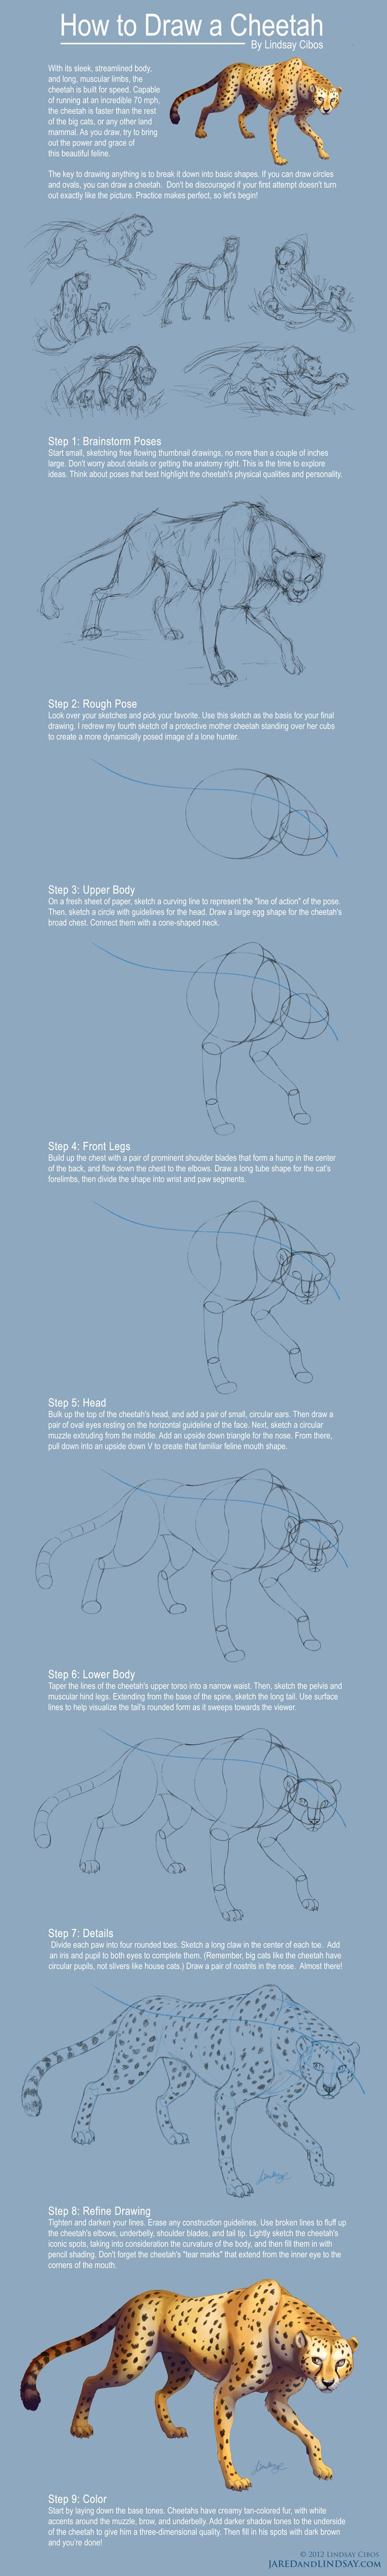 How To Draw A Cheetah by LCibos.deviantart.com on @deviantART